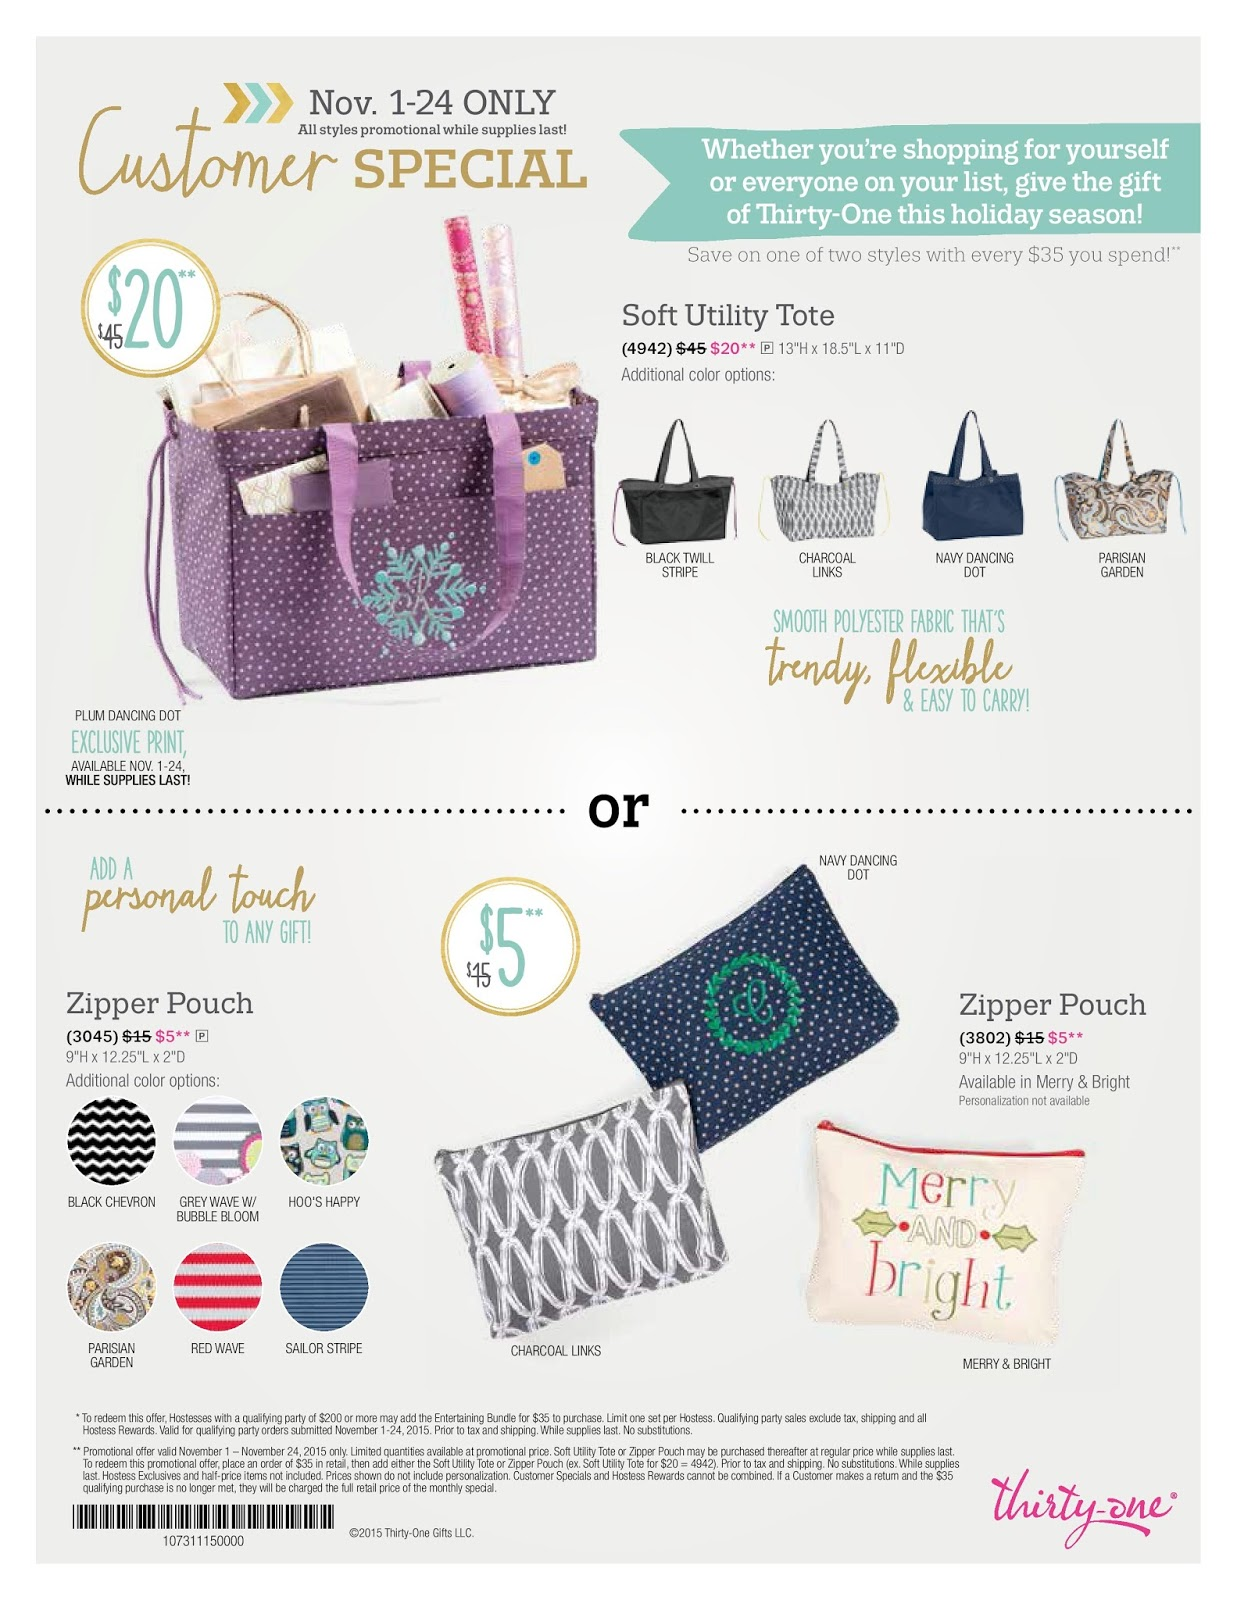 Thirty one november customer special 2014 - Host A Qualifying Party In November And You Can Earn The Above Entertaining Bundle For Free 20 With A Qualifying 200 Party Customer Special